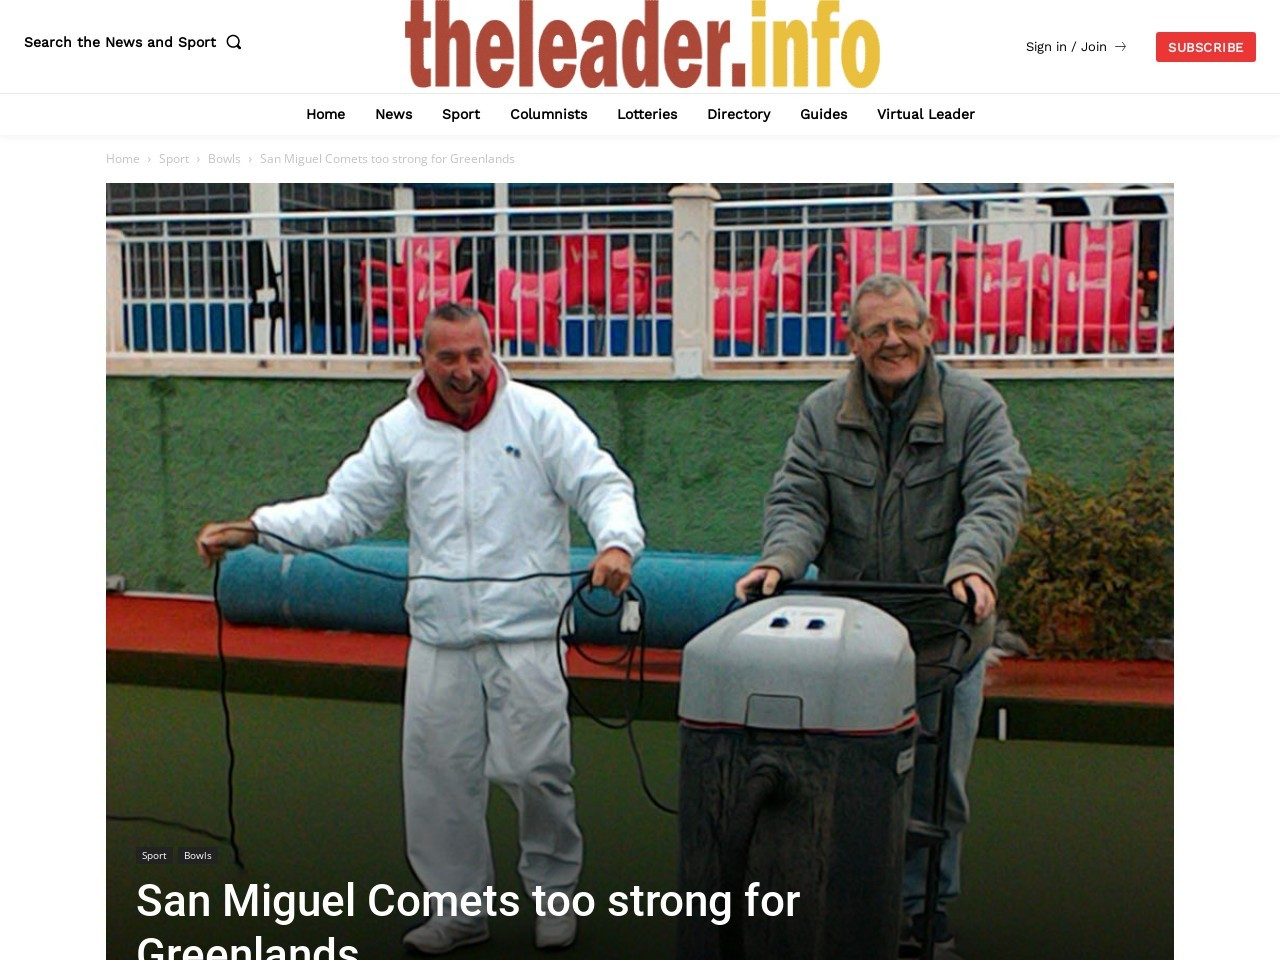 San Miguel Comets too strong for Greenlands